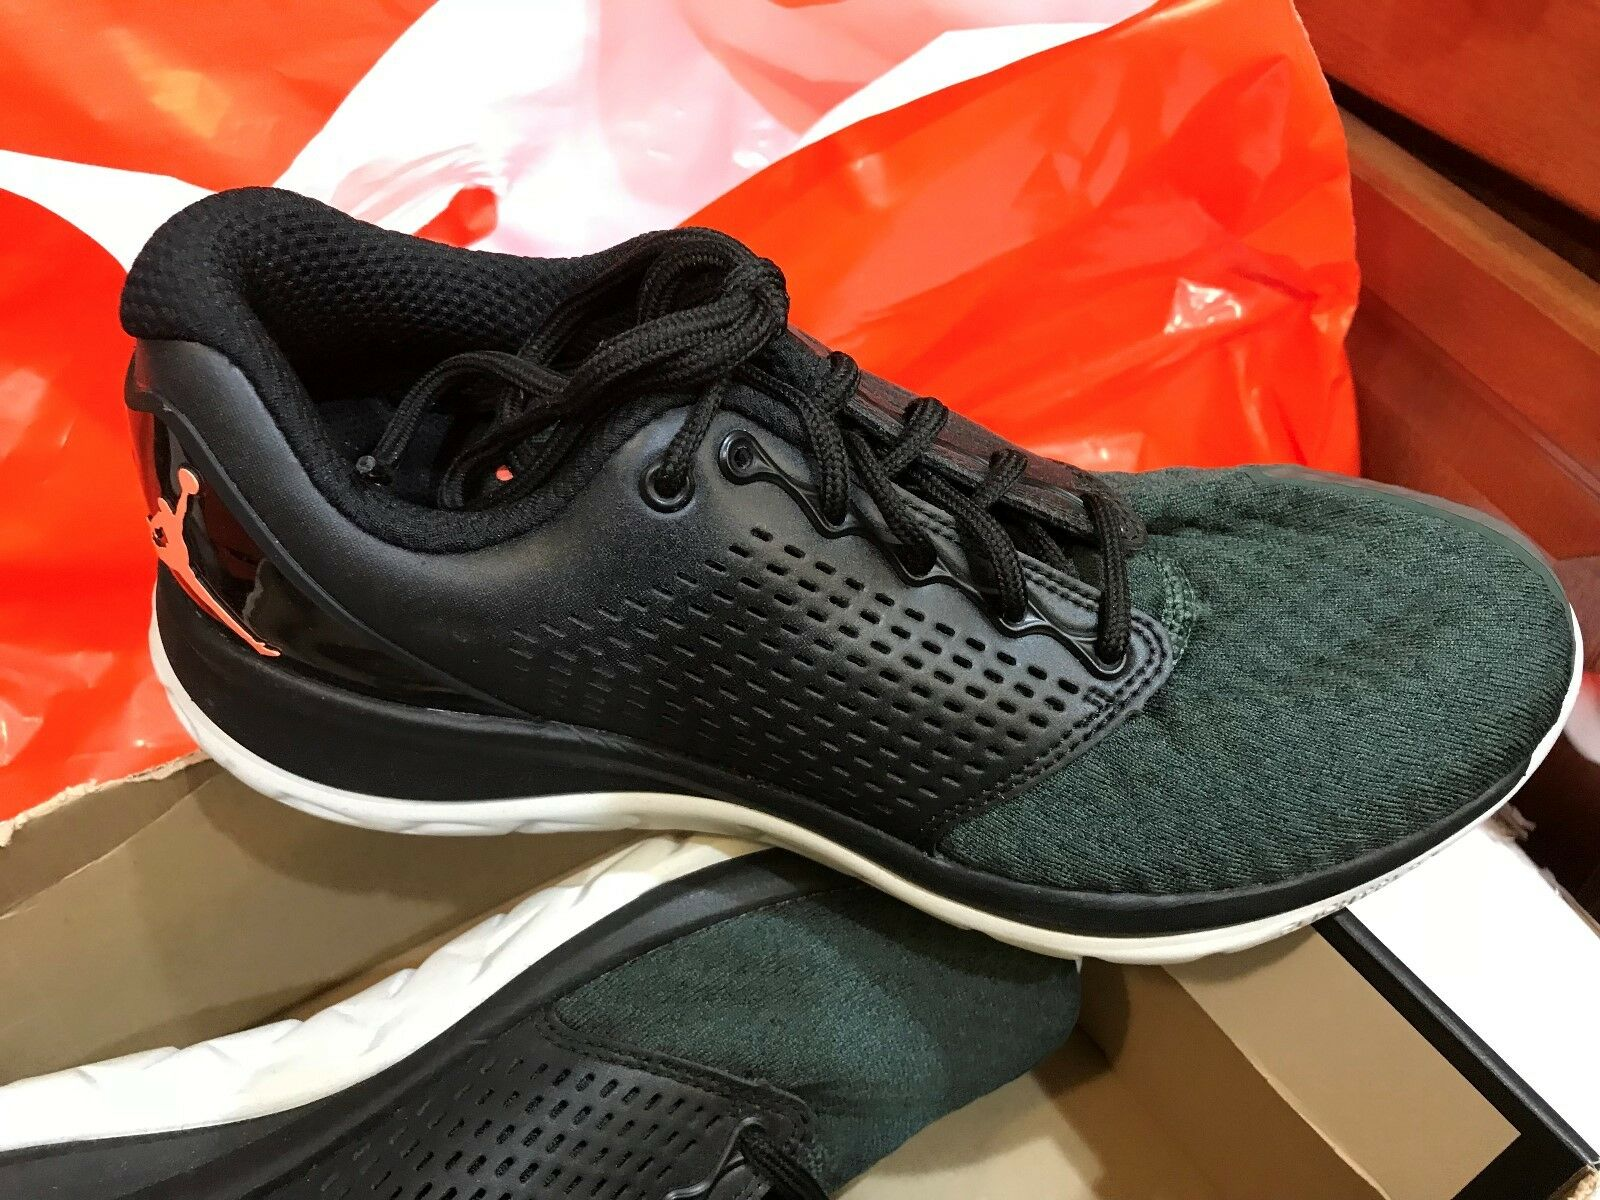 Nike Jordan Trainer ST Winter Mens Shoes 9 Black Grove Green Mango 854562 012 Special limited time